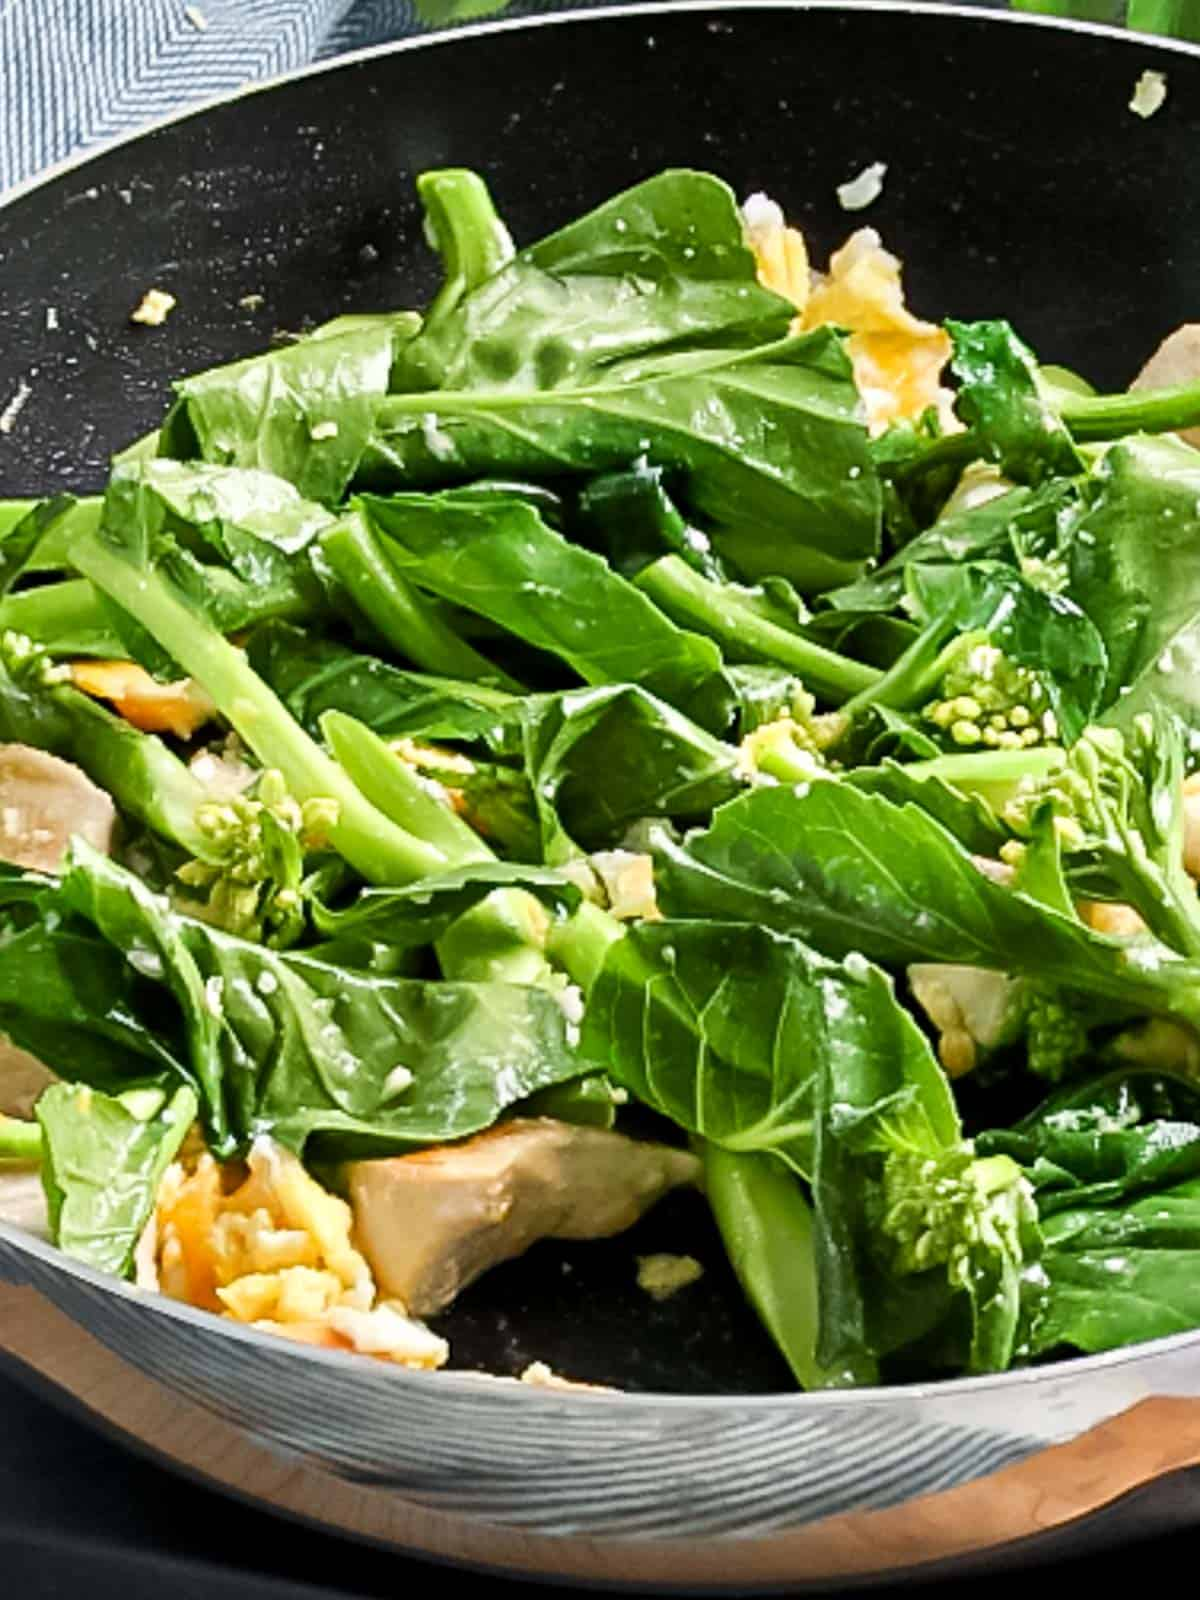 Chinese broccoli (gai lan) added to fried eggs and chicken.